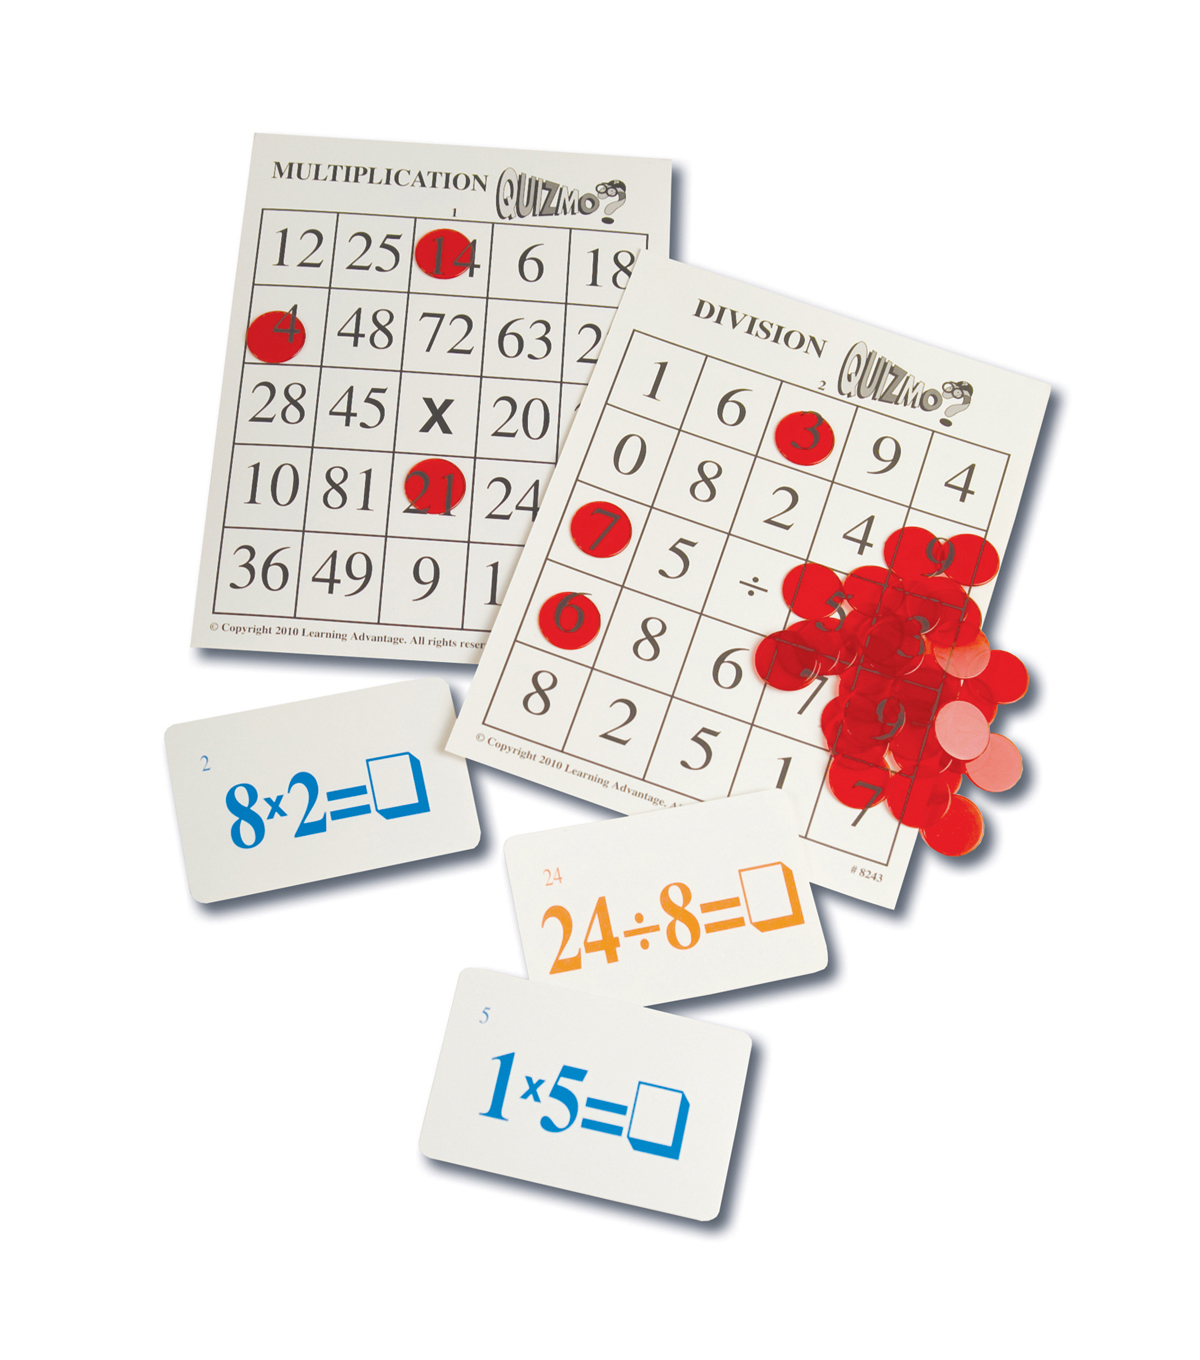 Multiplication & Division Quizmo Game